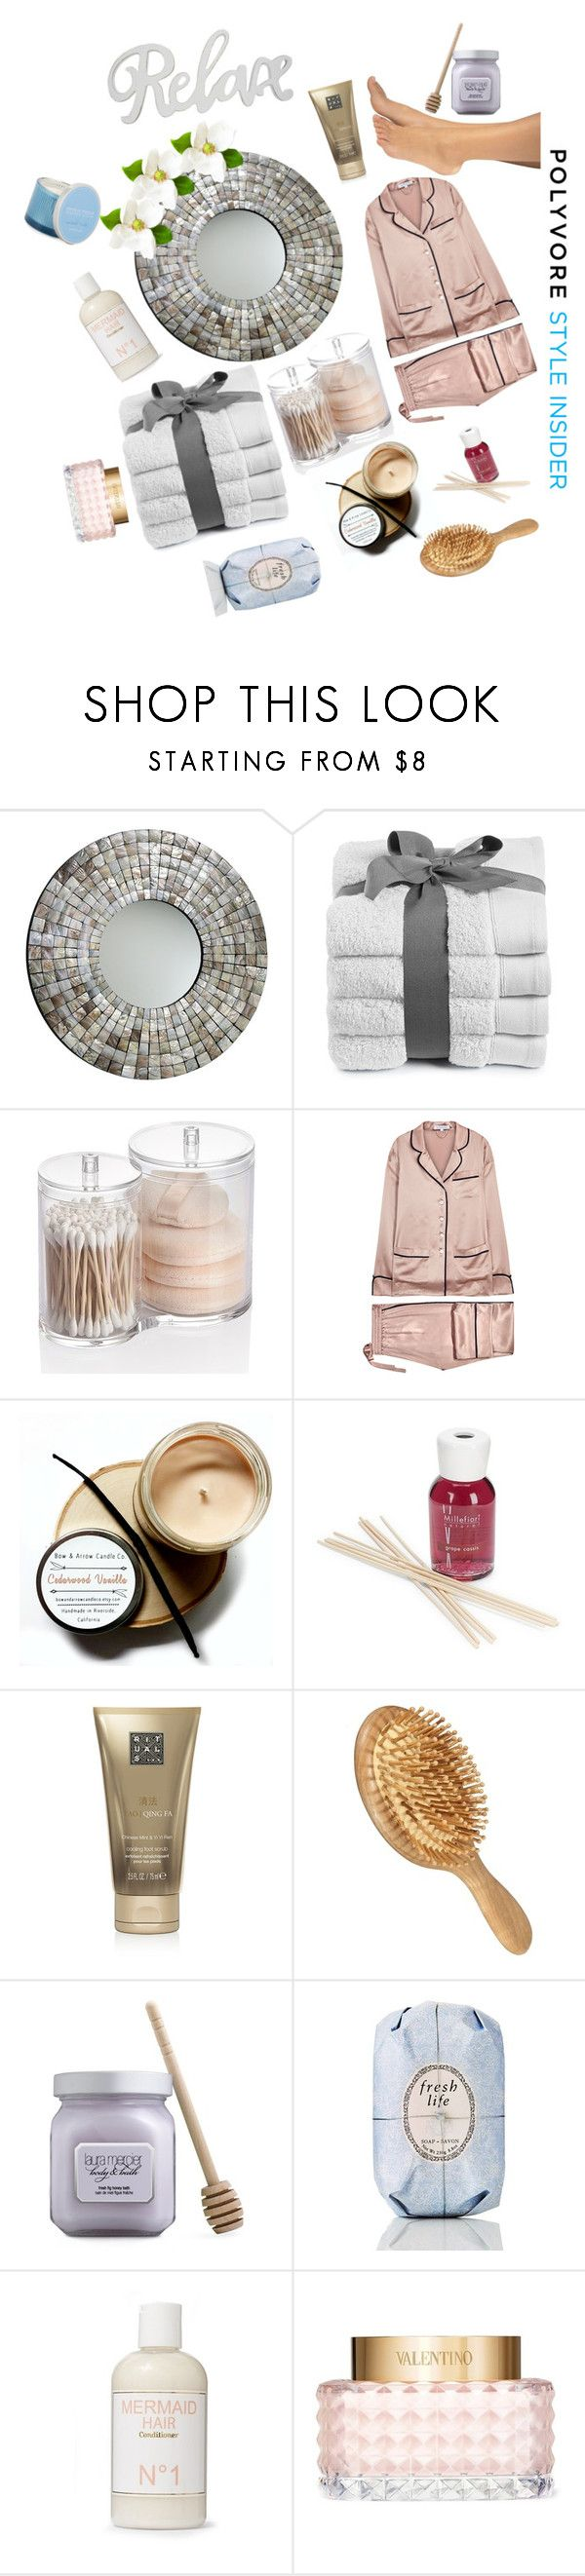 """""""#bath #time #relax #blue #cream #for #you #lady #lazy"""" by infodina ❤ liked on Polyvore featuring Cyan Design, Olivia von Halle, Millefiori, Rituals, Laura Mercier, Fresh, Liberty, Valentino and Modern Alchemy"""